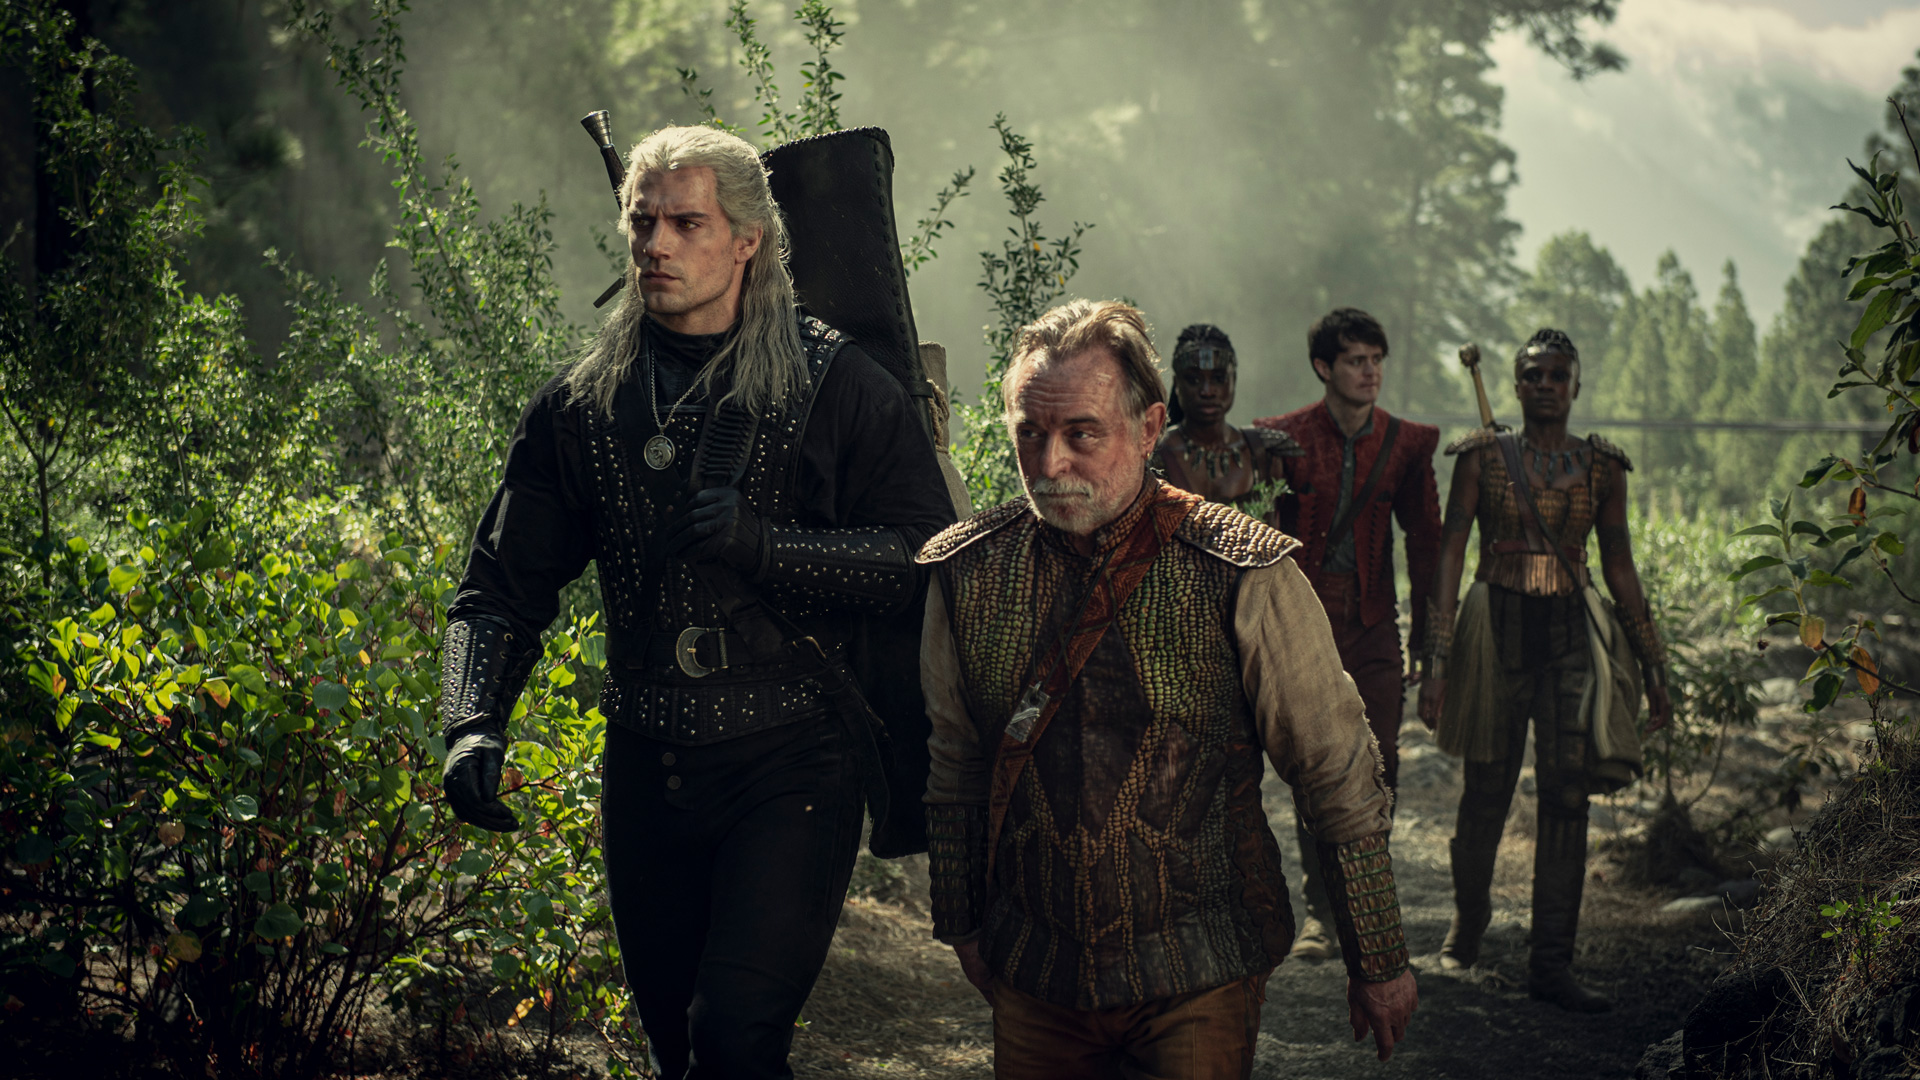 Henry Cavill appears in anforested outdoor setting in a still from the fantasy action series The Witcher.